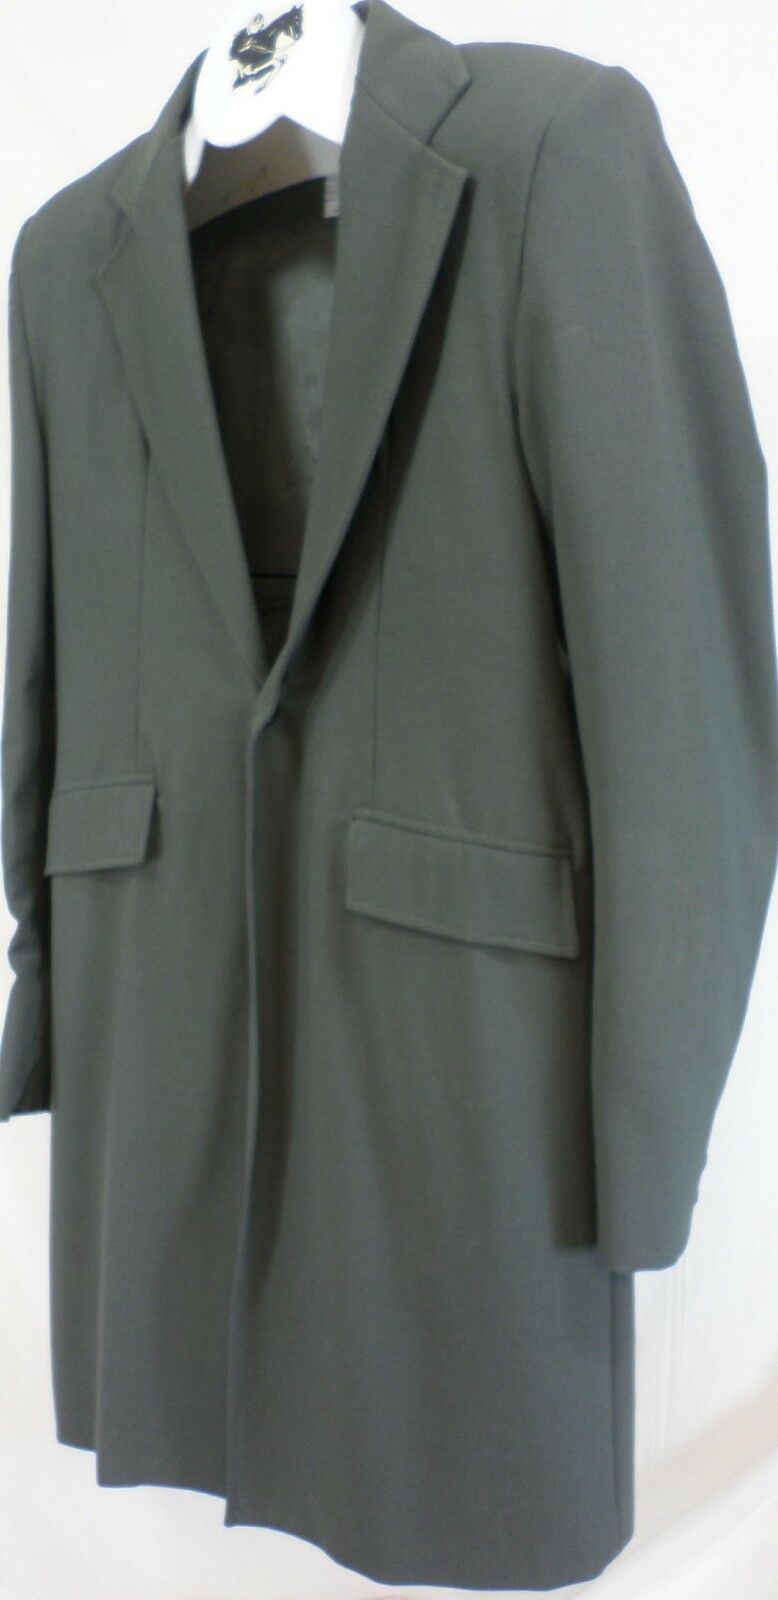 Reed Hill Mens Saddleseat 3 Pc Suit  Sage Green Stretch Wool Blend 40 - USA  timeless classic